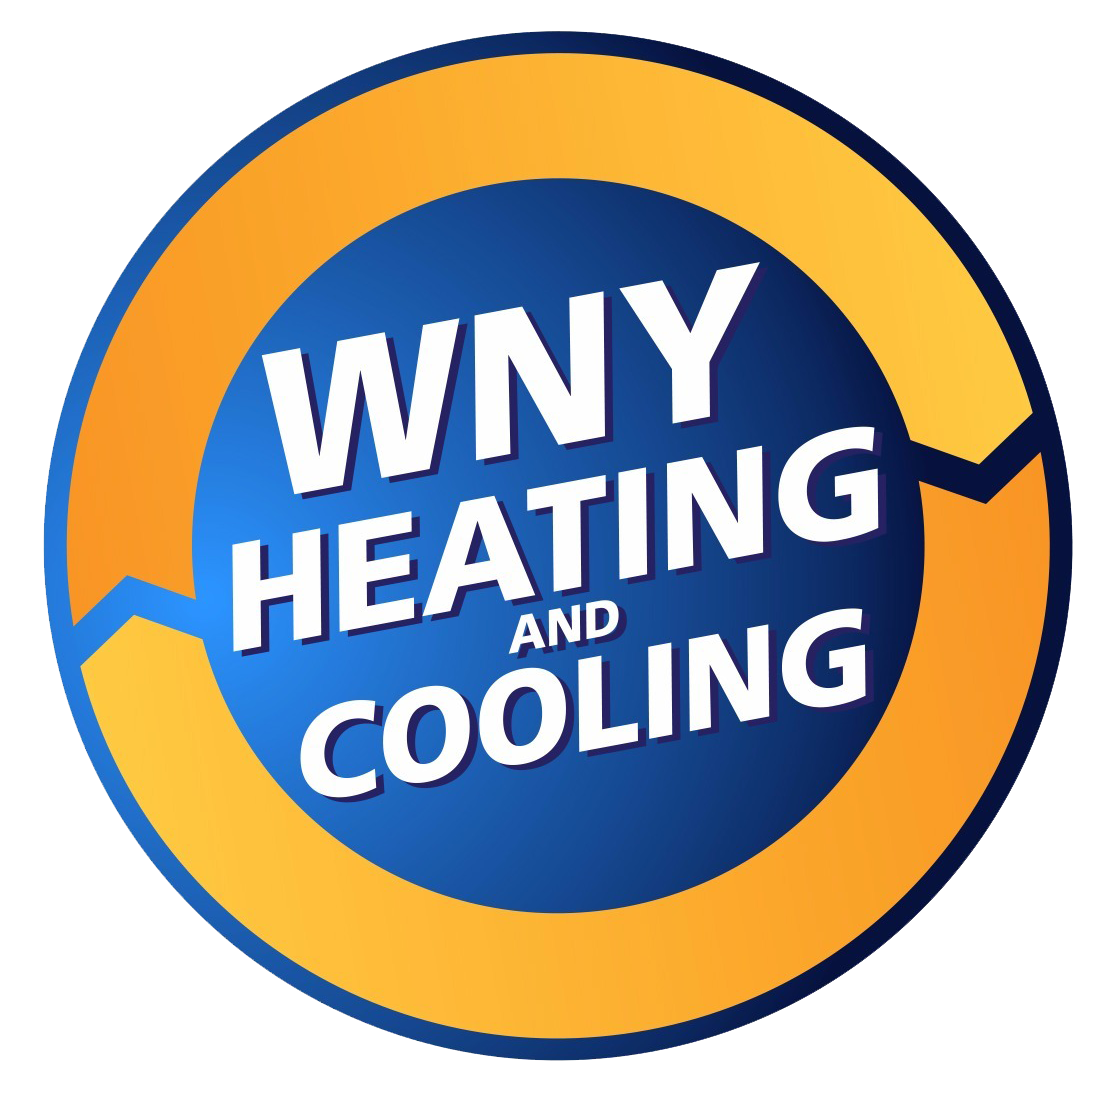 WNY Heating and Cooling